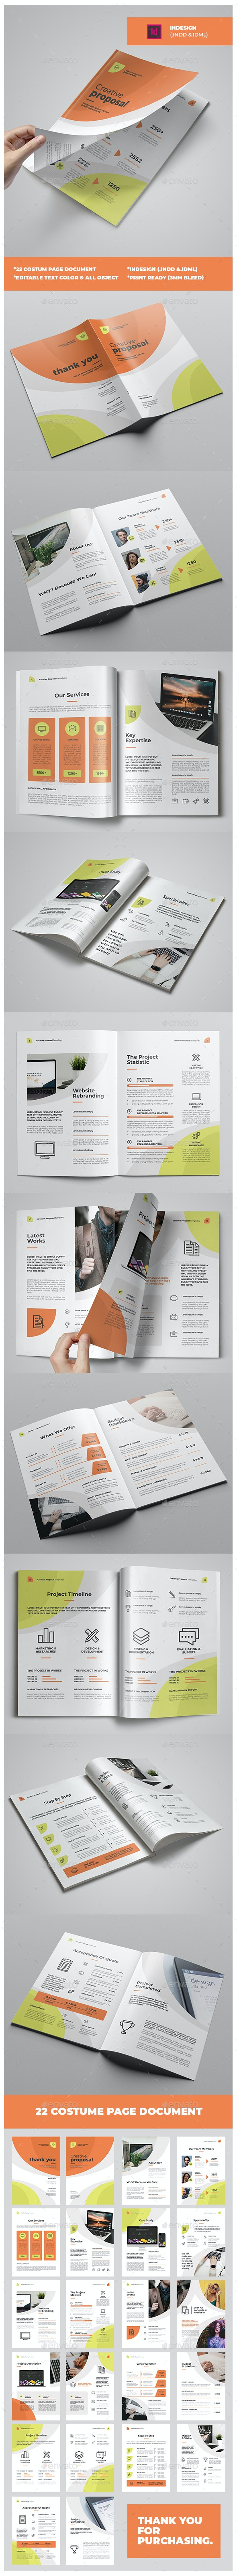 Creative Proposal - Proposals & Invoices Stationery